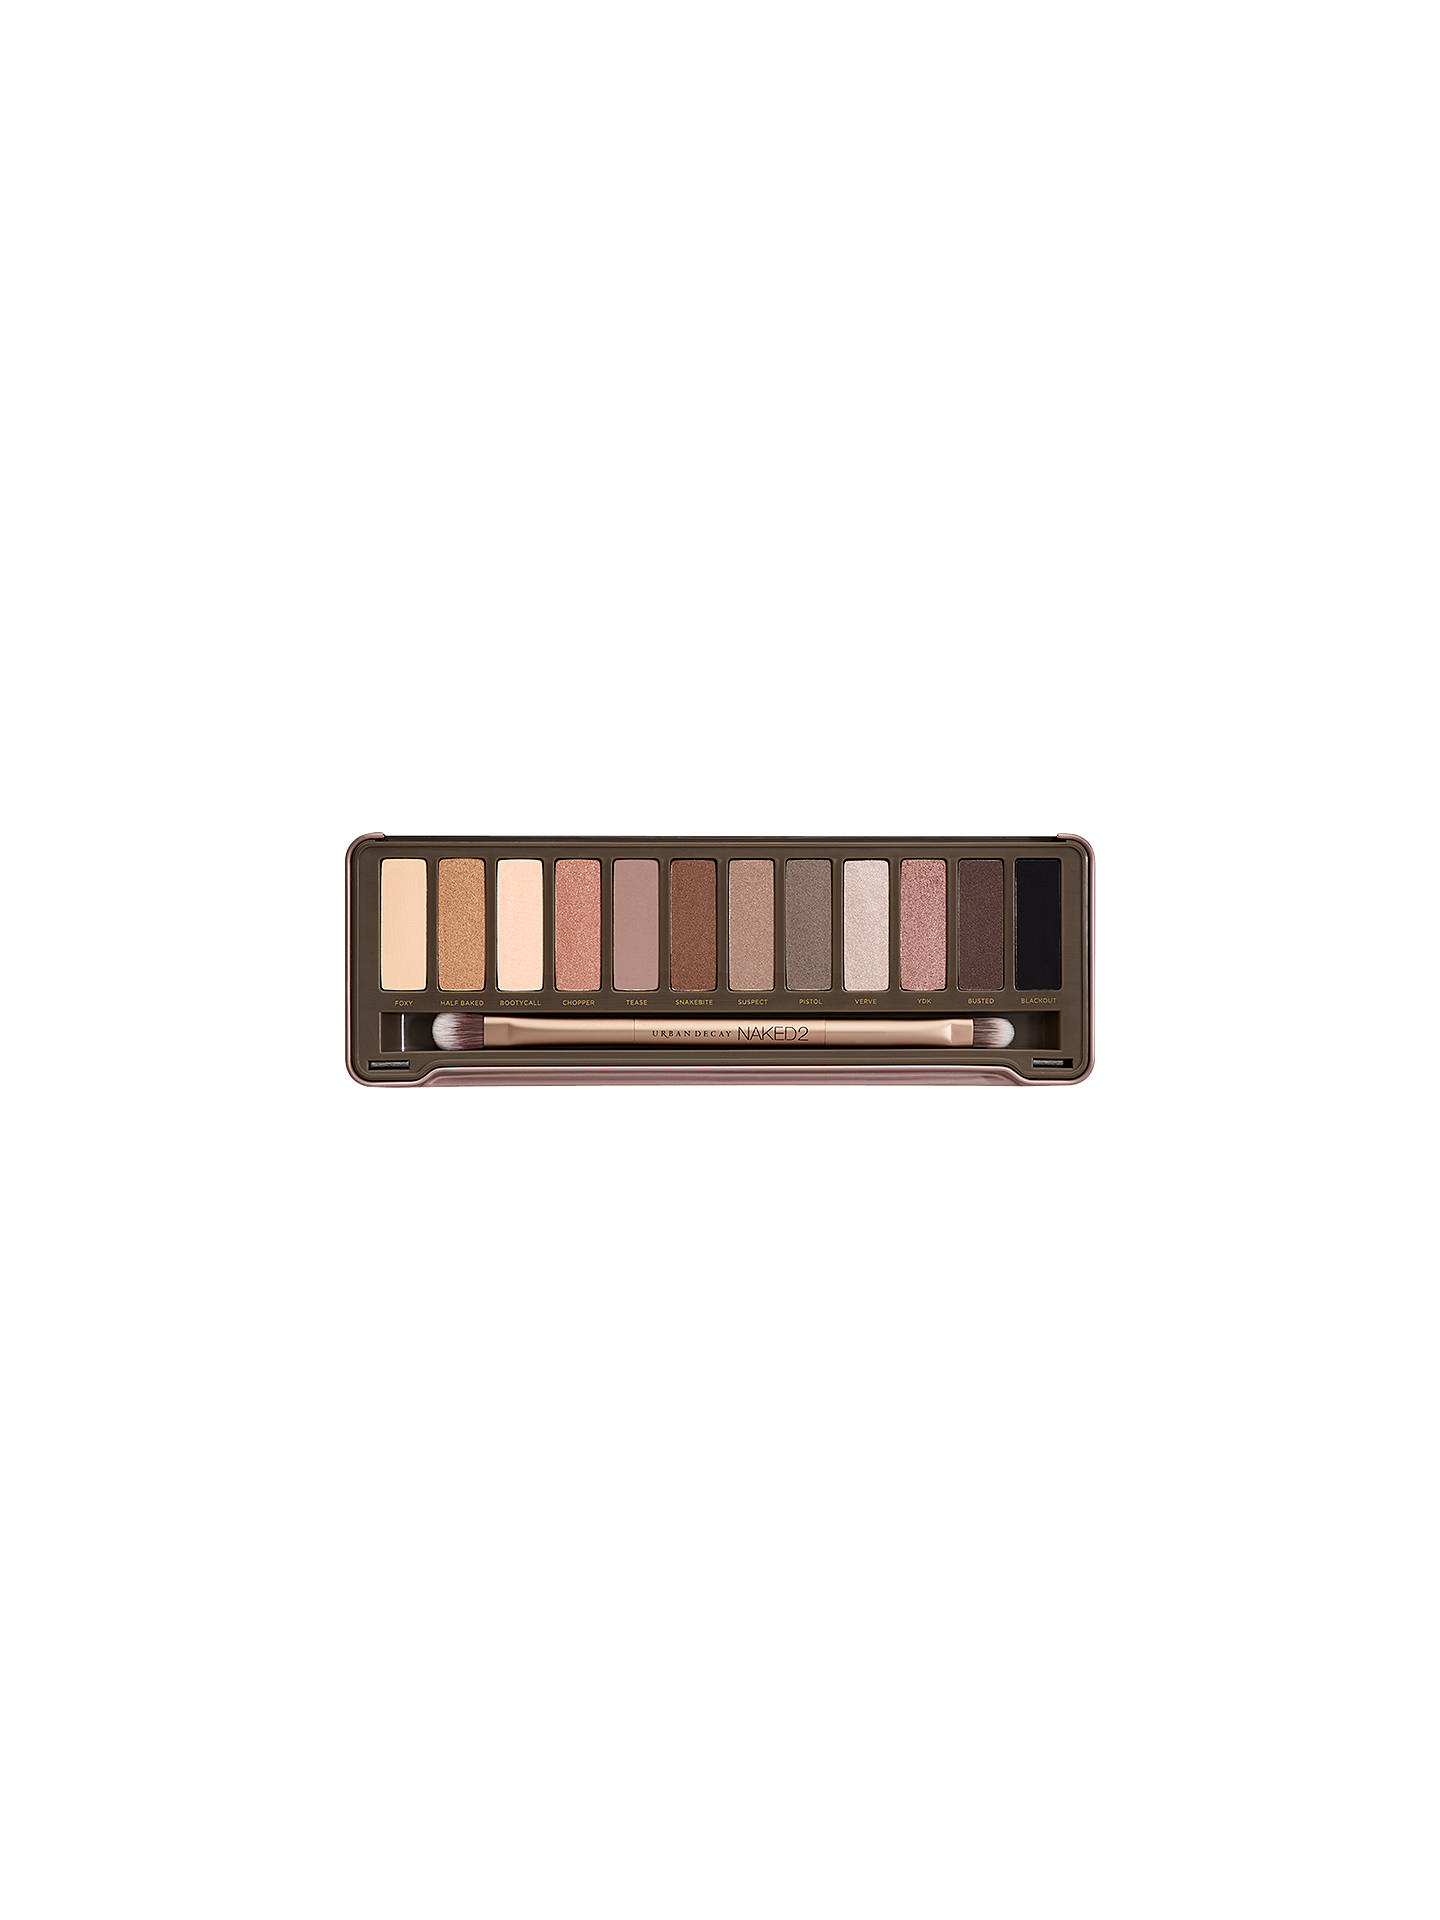 Buy Urban Decay Eyeshadow Palette, Naked 2 Online at johnlewis.com